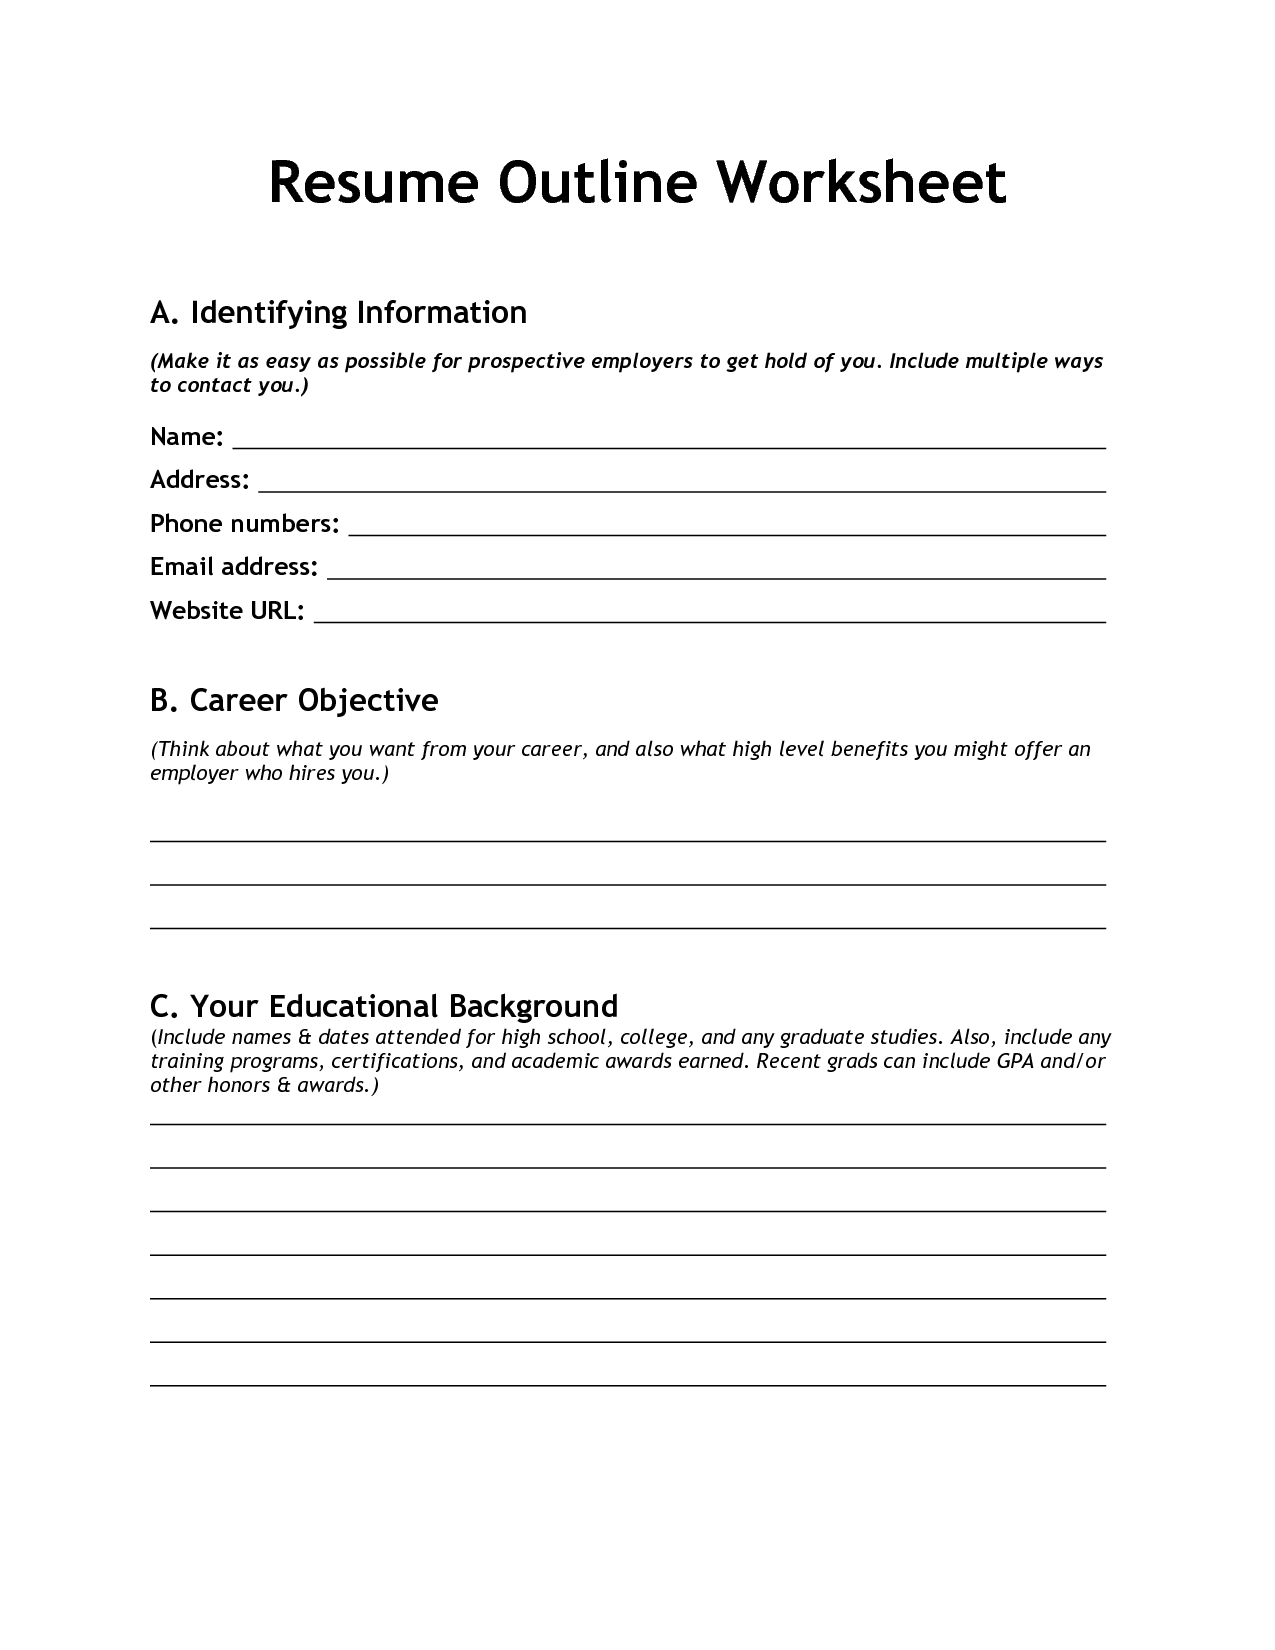 Blank Resume Worksheet